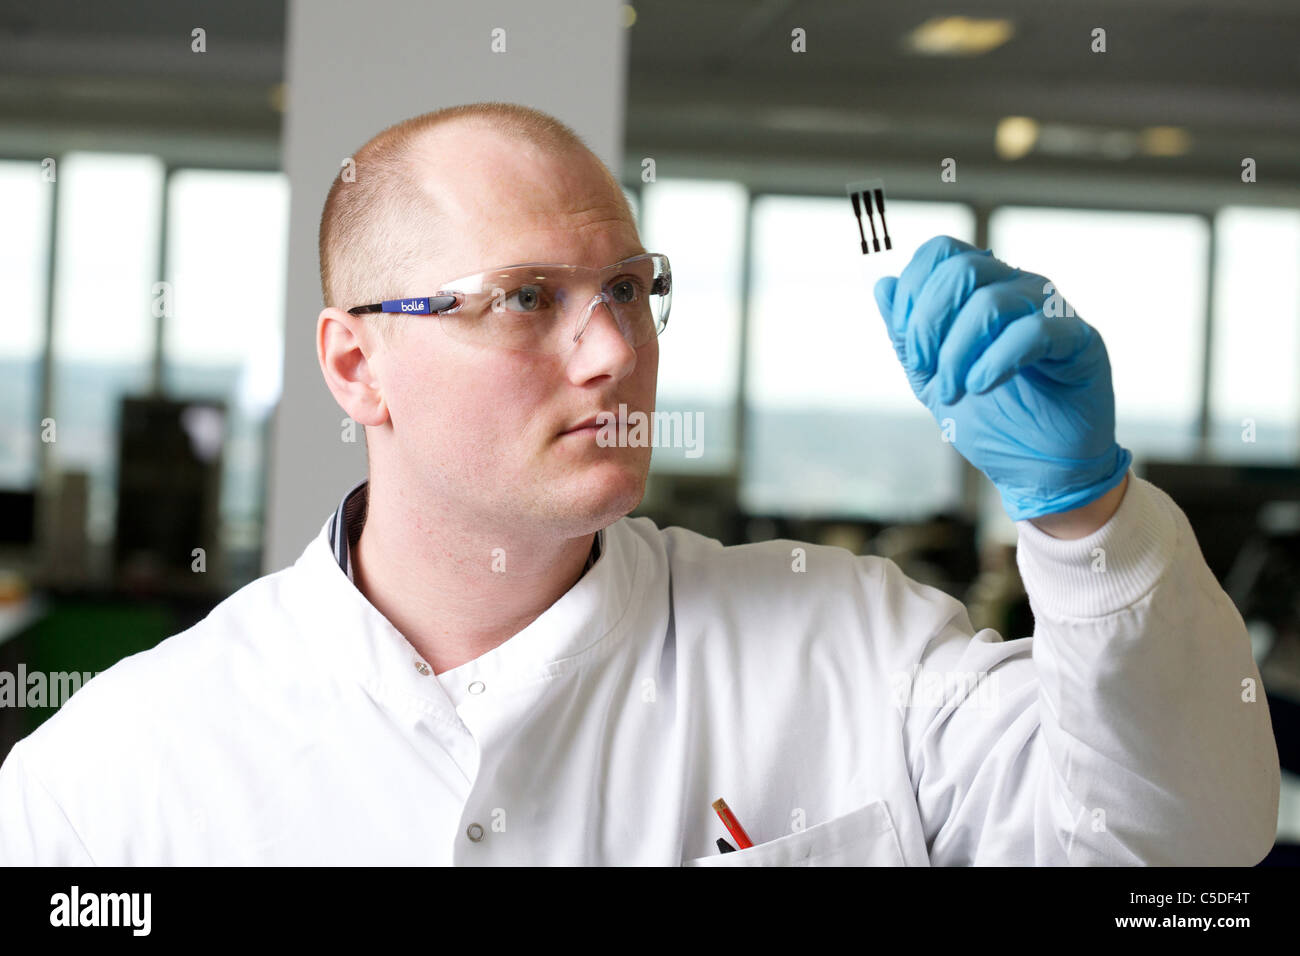 Wed 6th July 2011 Lab technician viewing Electrochemistry electrodes Leeds Met University Bio Chemistry Laboratories. - Stock Image